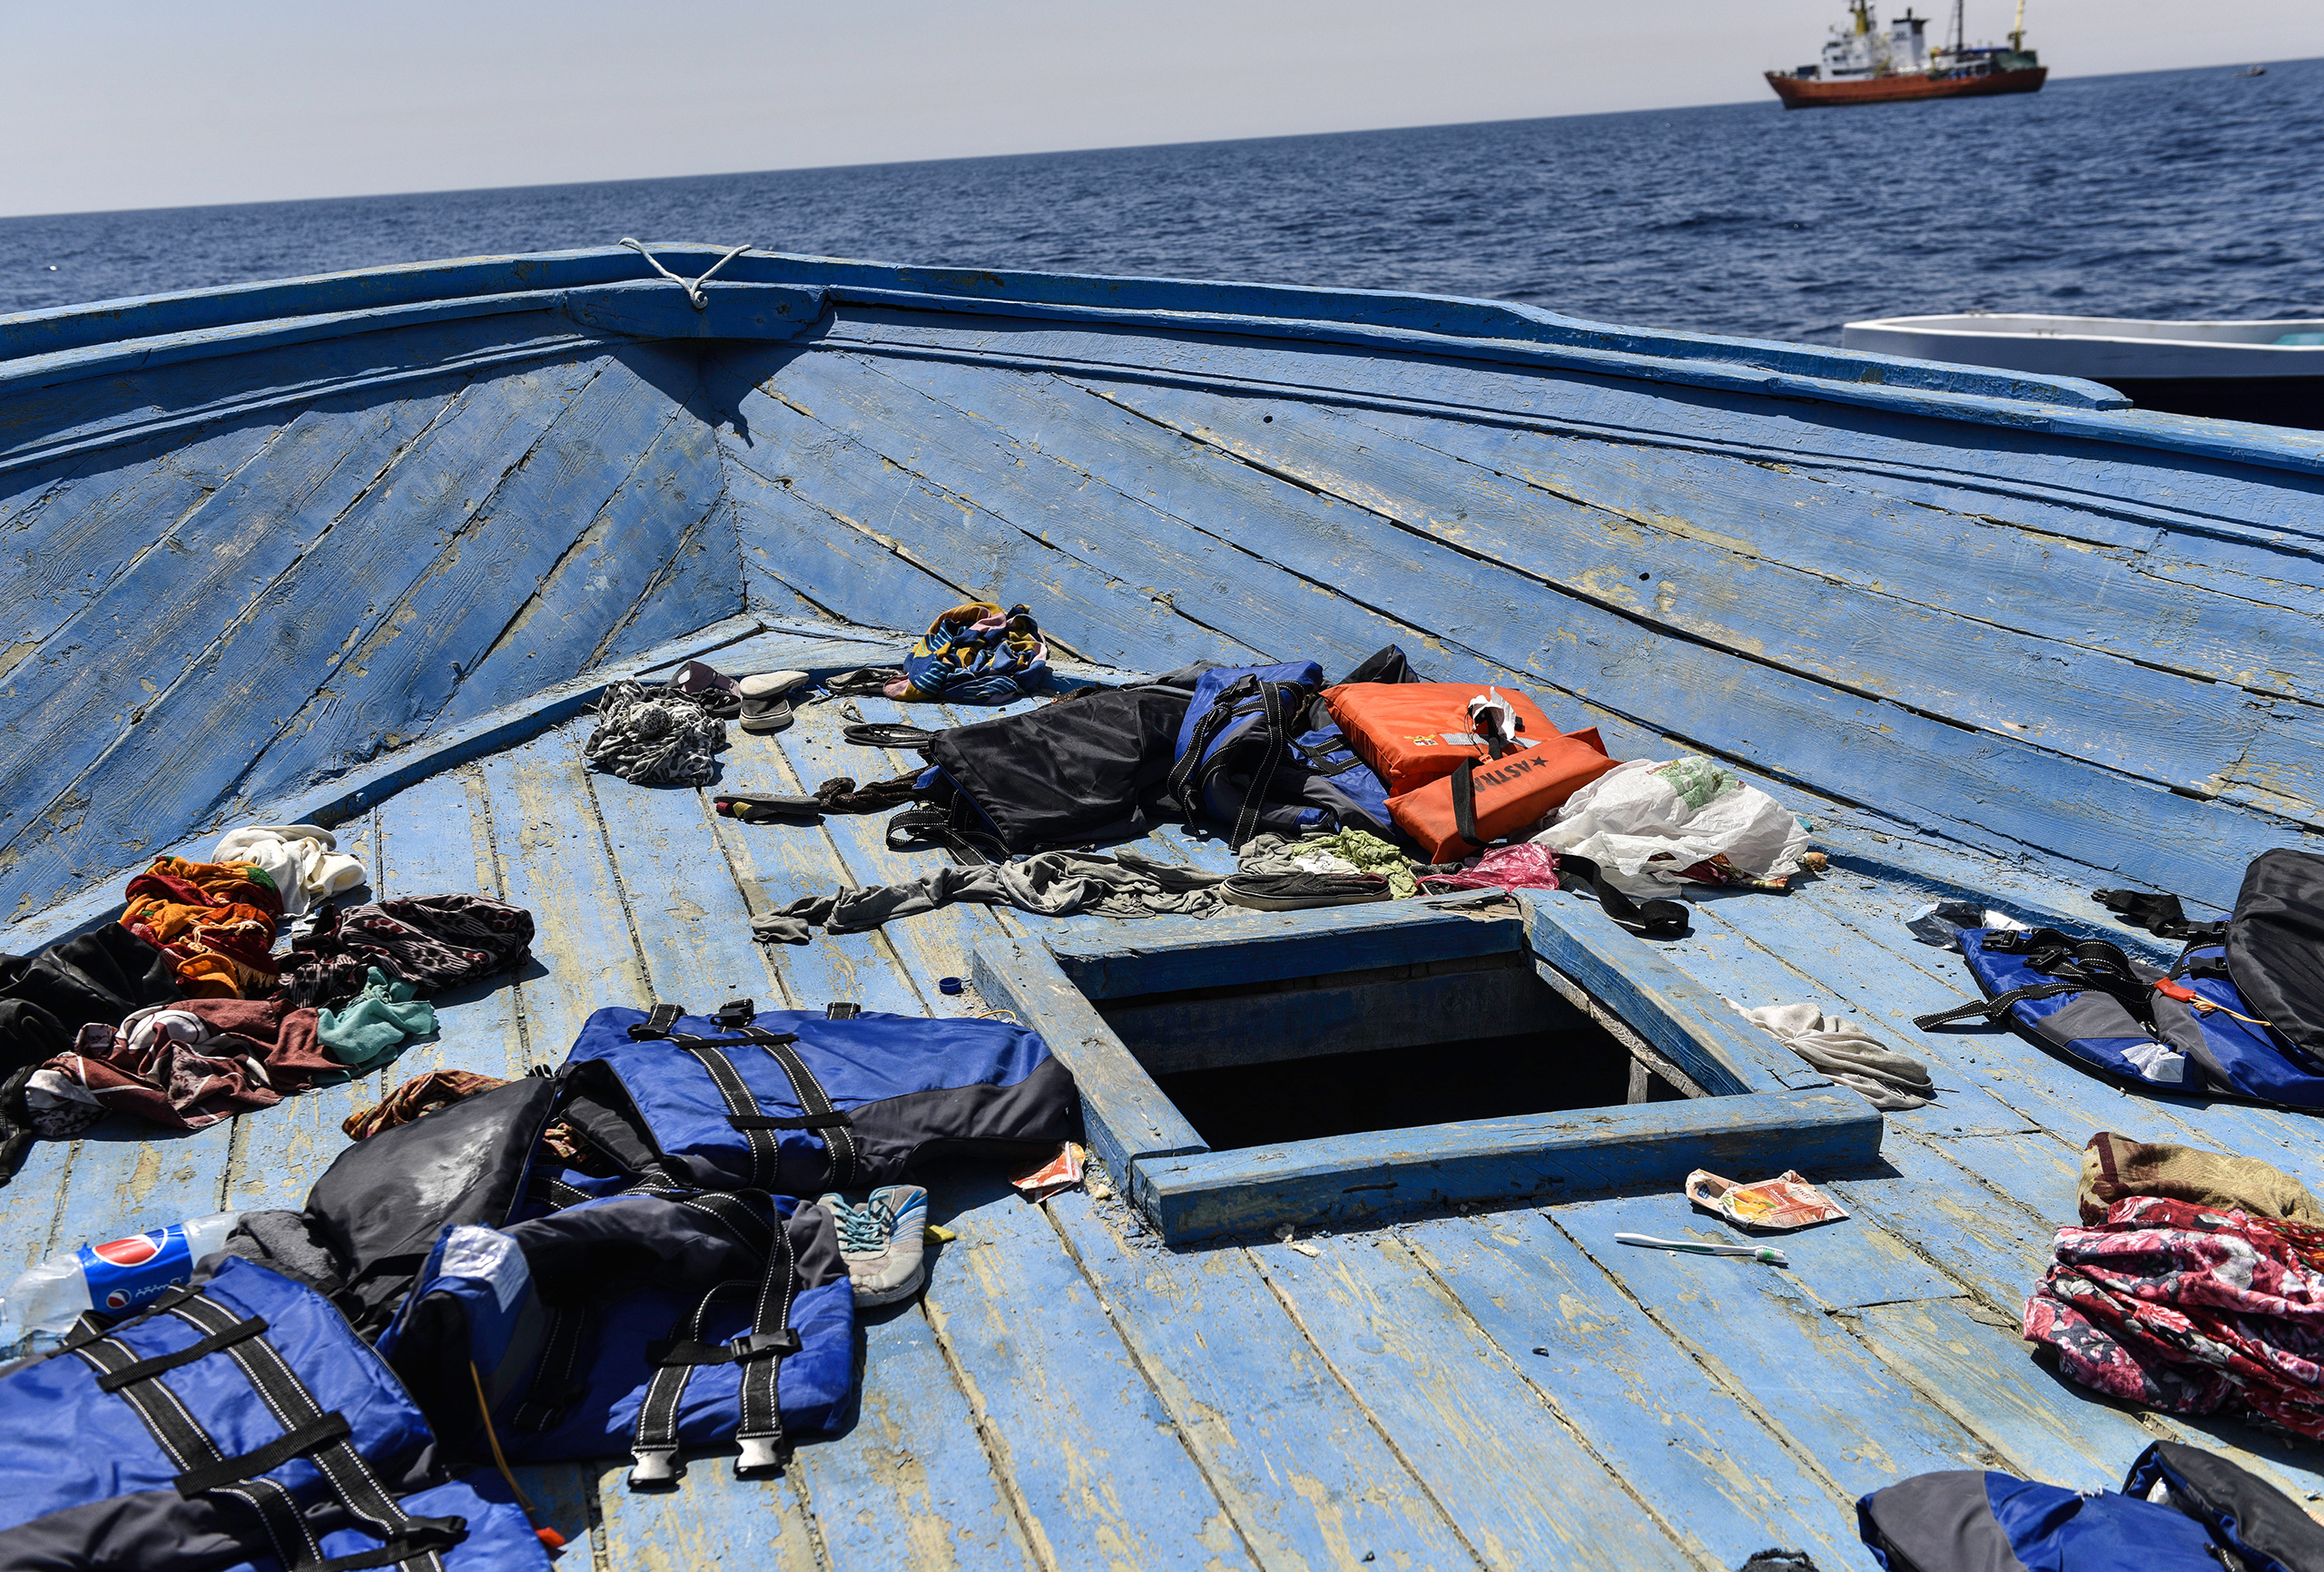 The deck of the empty leaking vessel after the rescue in the Mediterranean, Aug. 21, 2016.